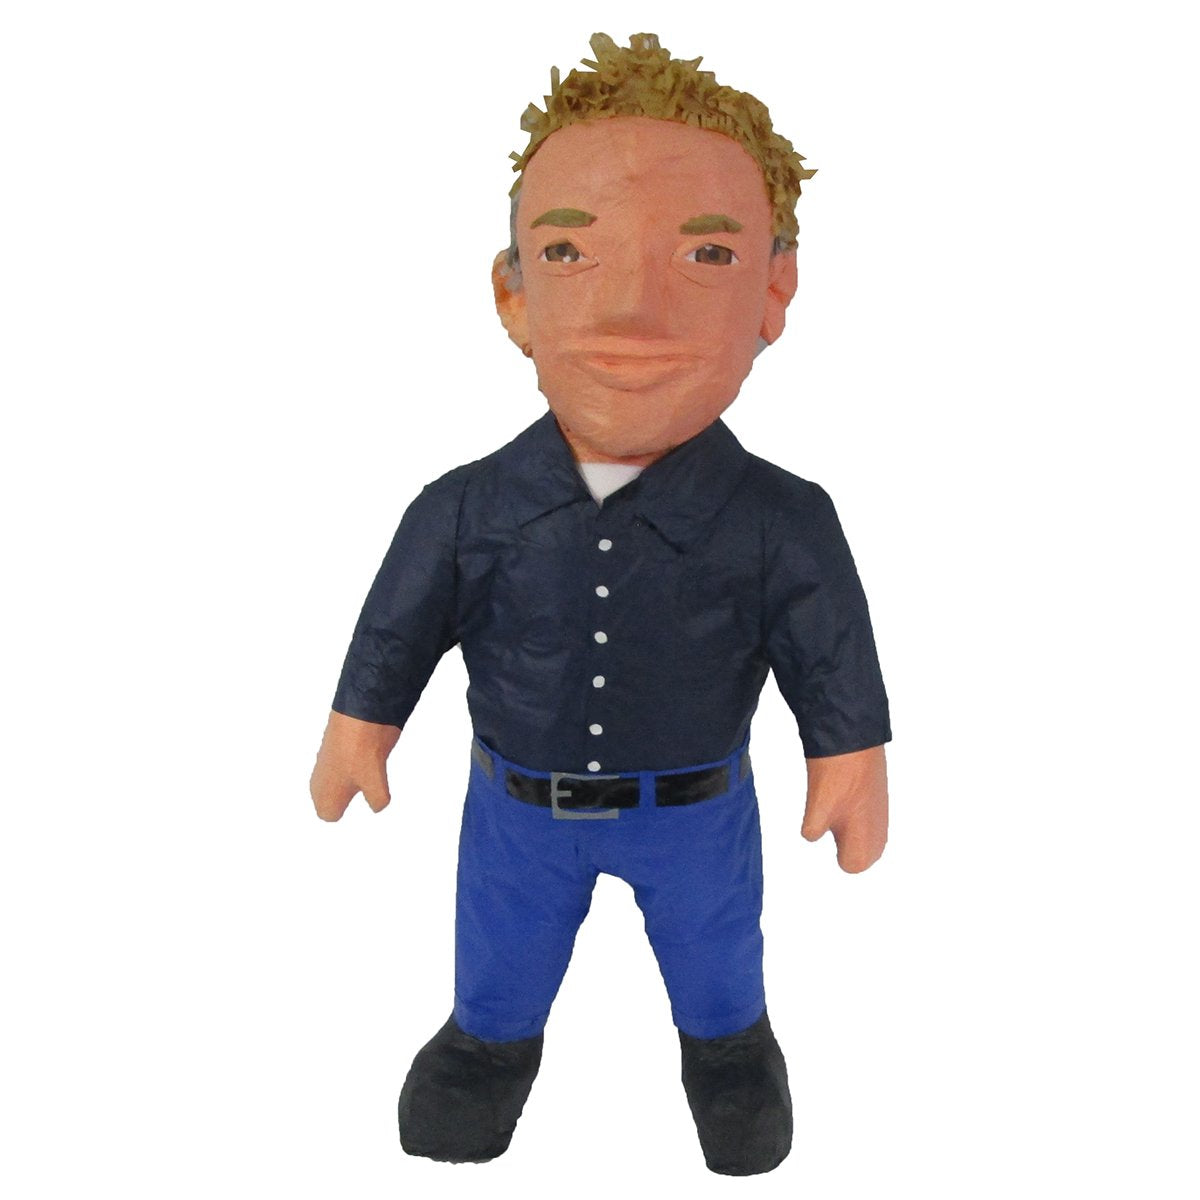 CUSTOM PERSON PINATA